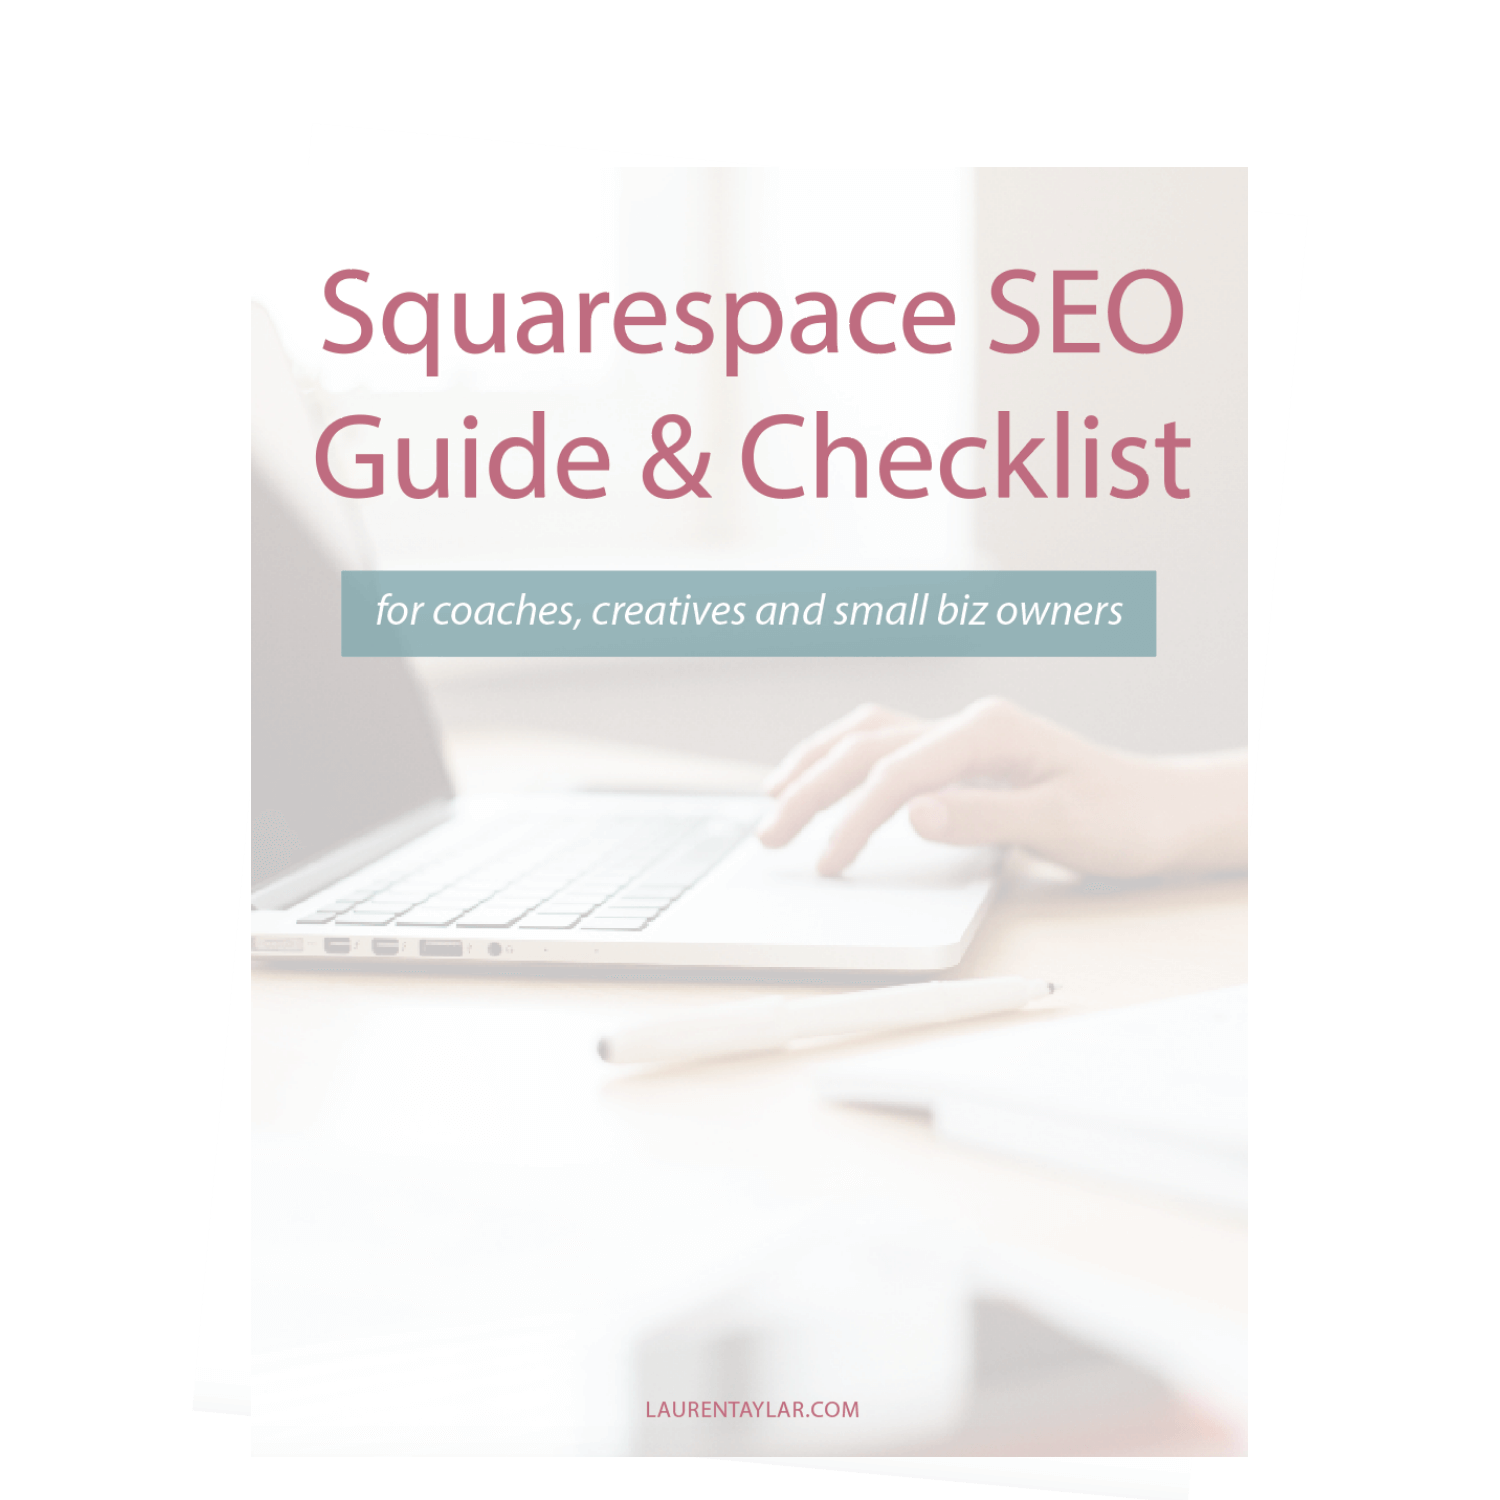 Squarespace SEO Guide - Learn what SEO is, top ranking factors, free keyword research tools, and get an on-page SEO checklist to follow